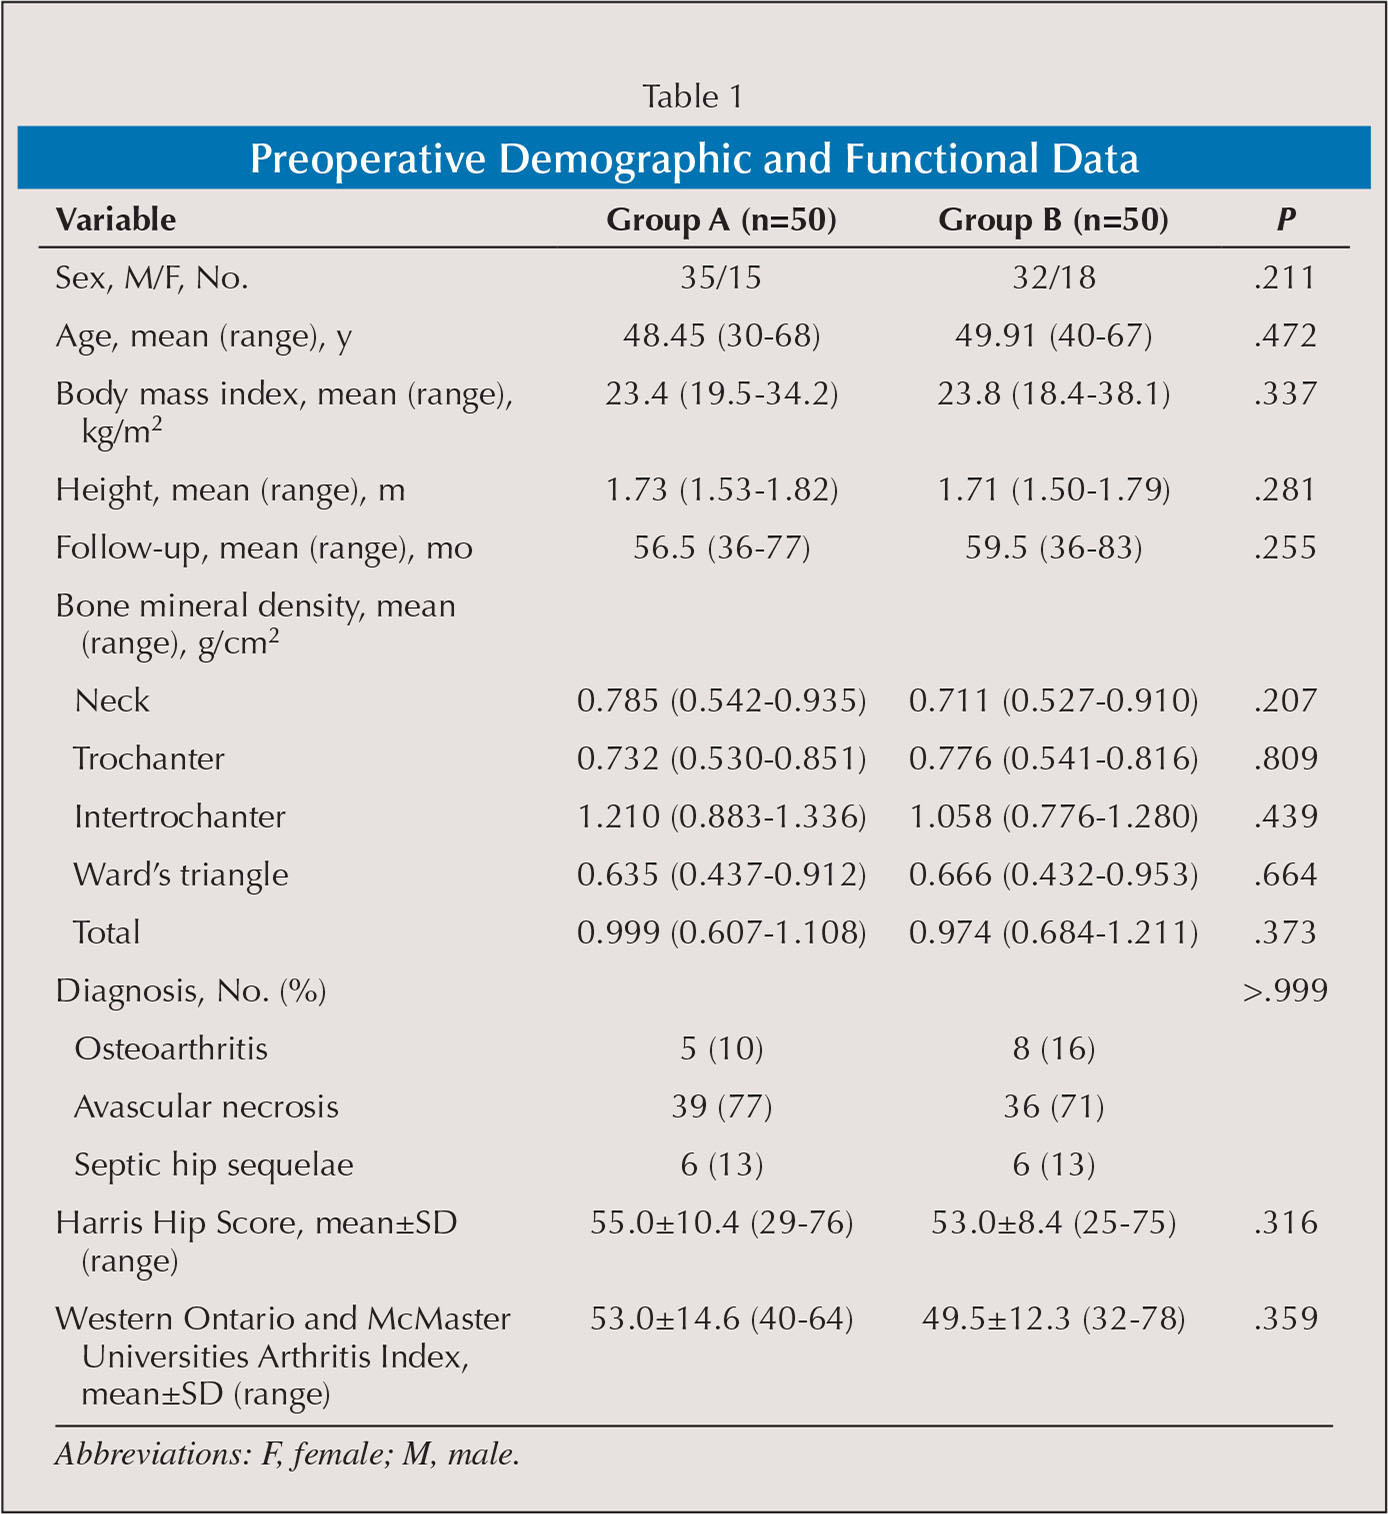 Preoperative Demographic and Functional Data